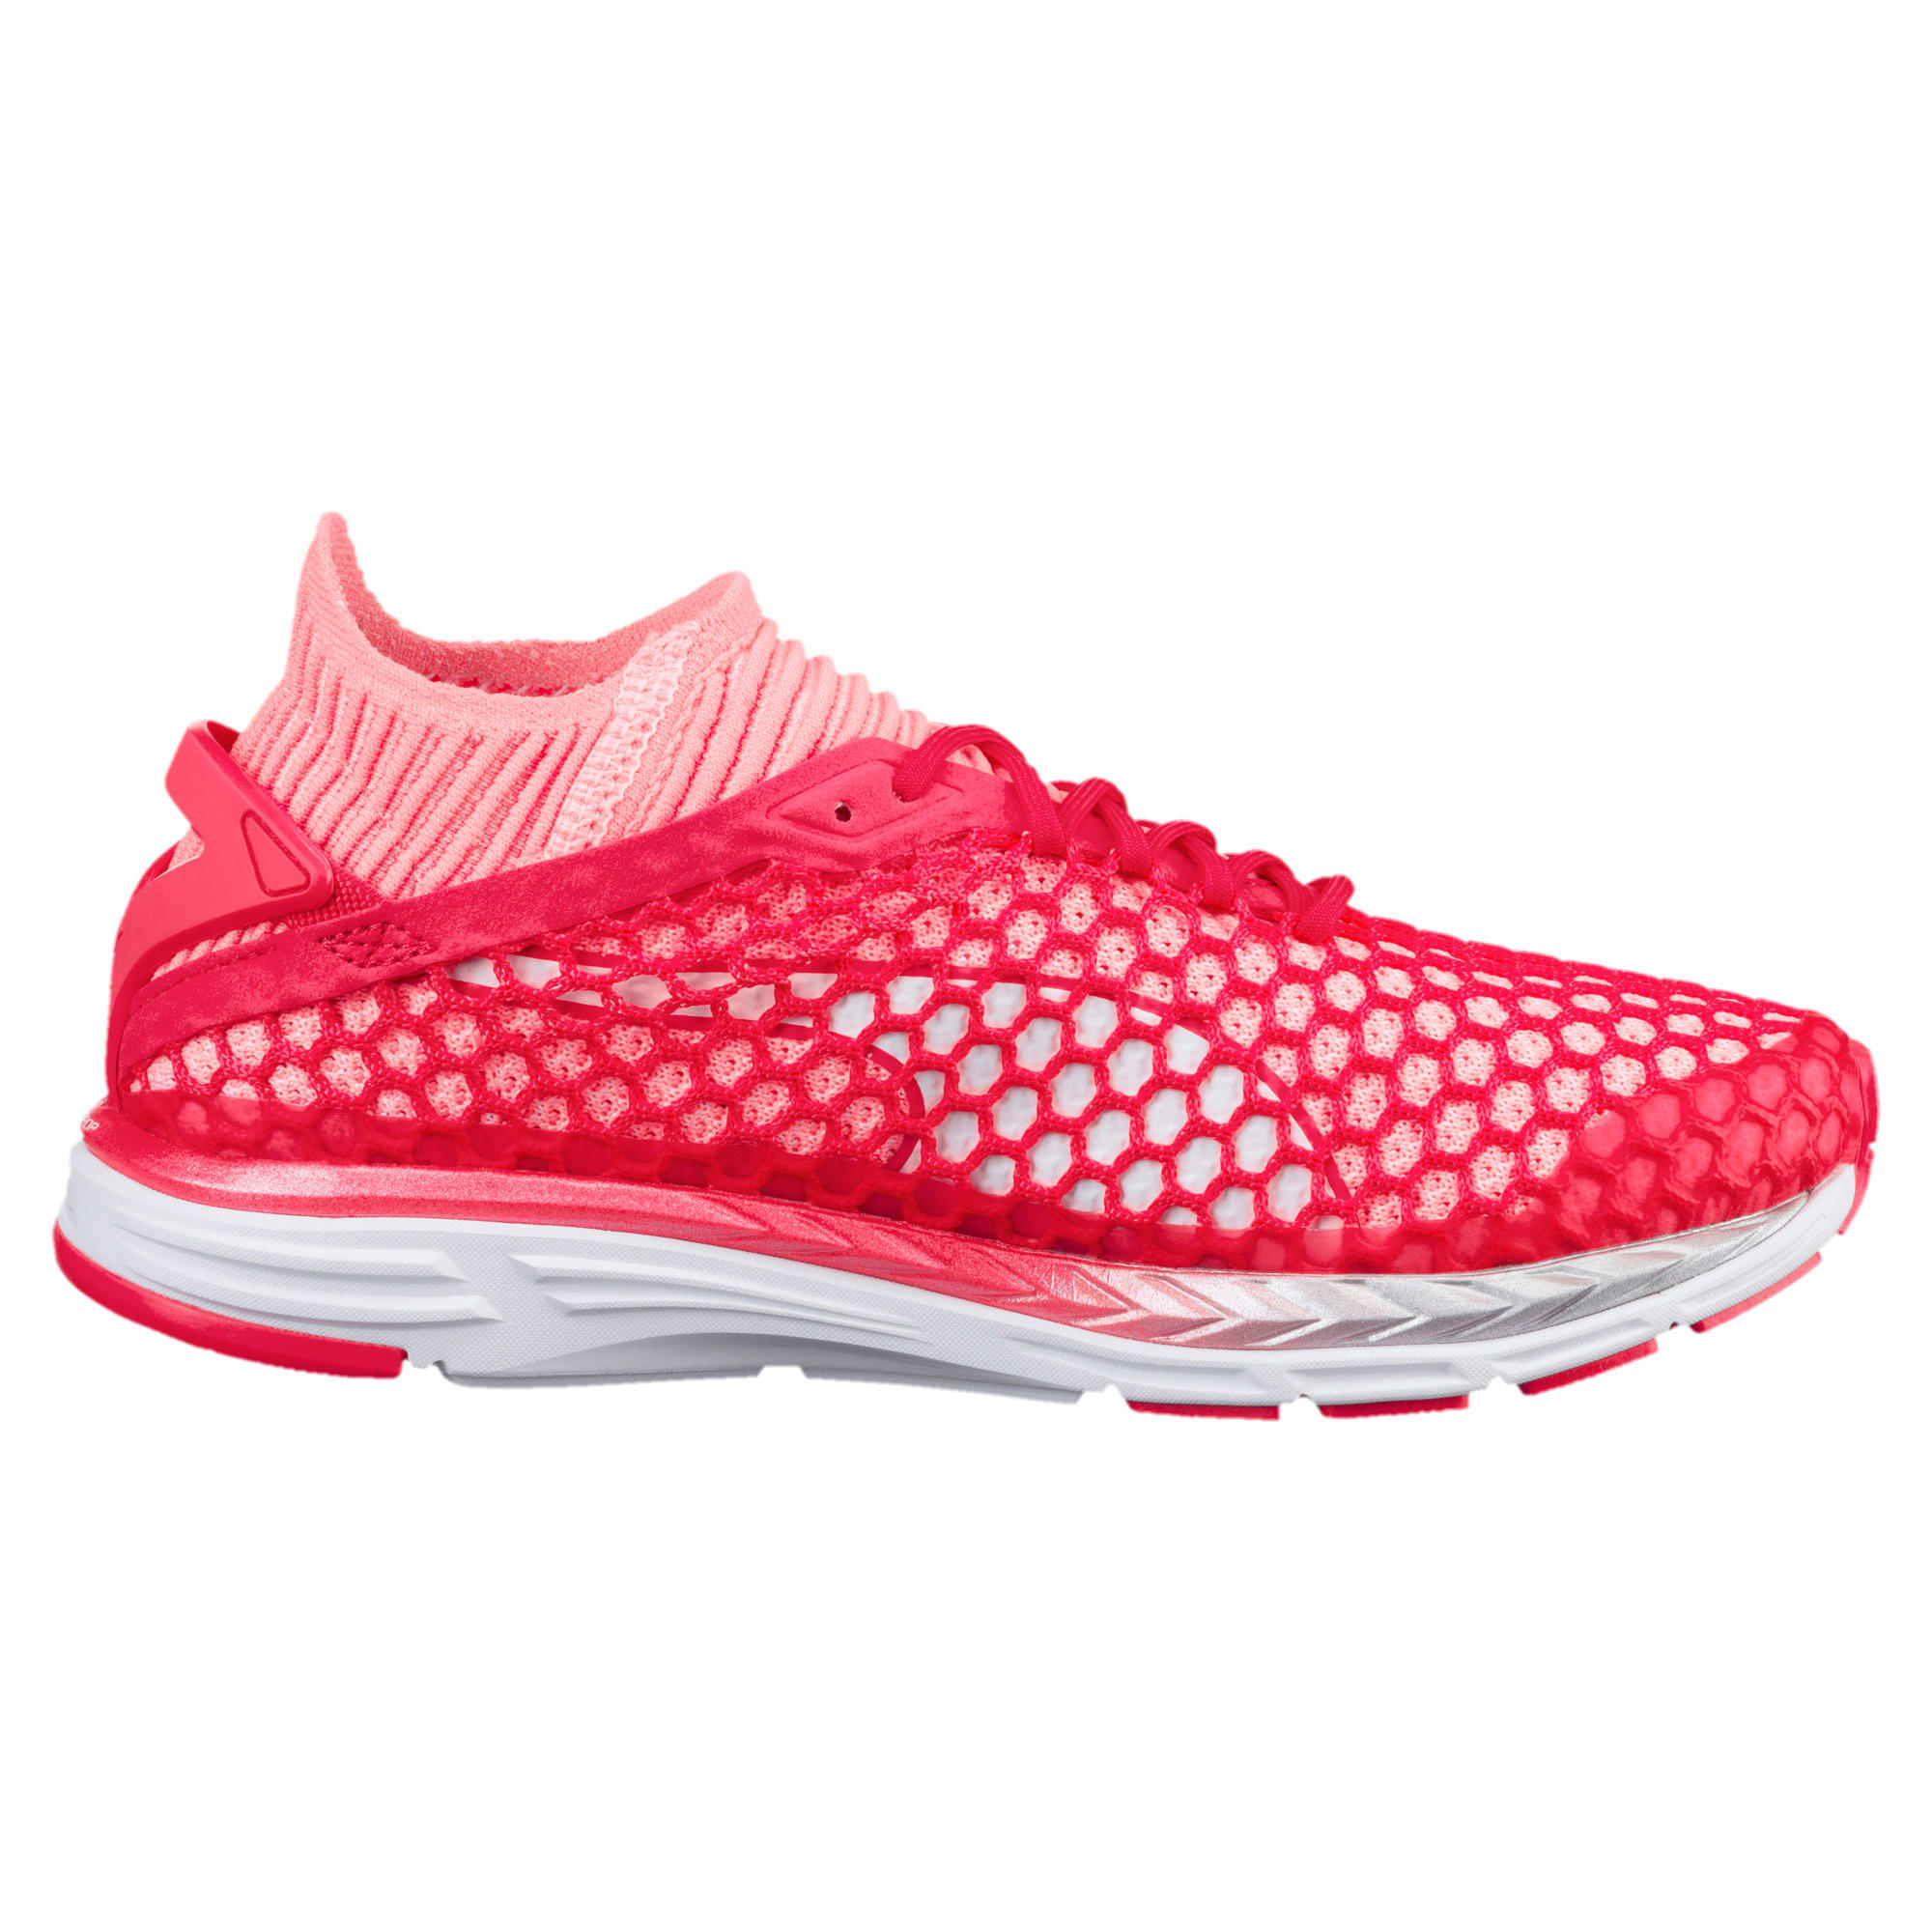 Thumbnail 5 of Speed IGNITE NETFIT 2 Women's Running Shoes, Pink-Fluo Peach-White, medium-IND